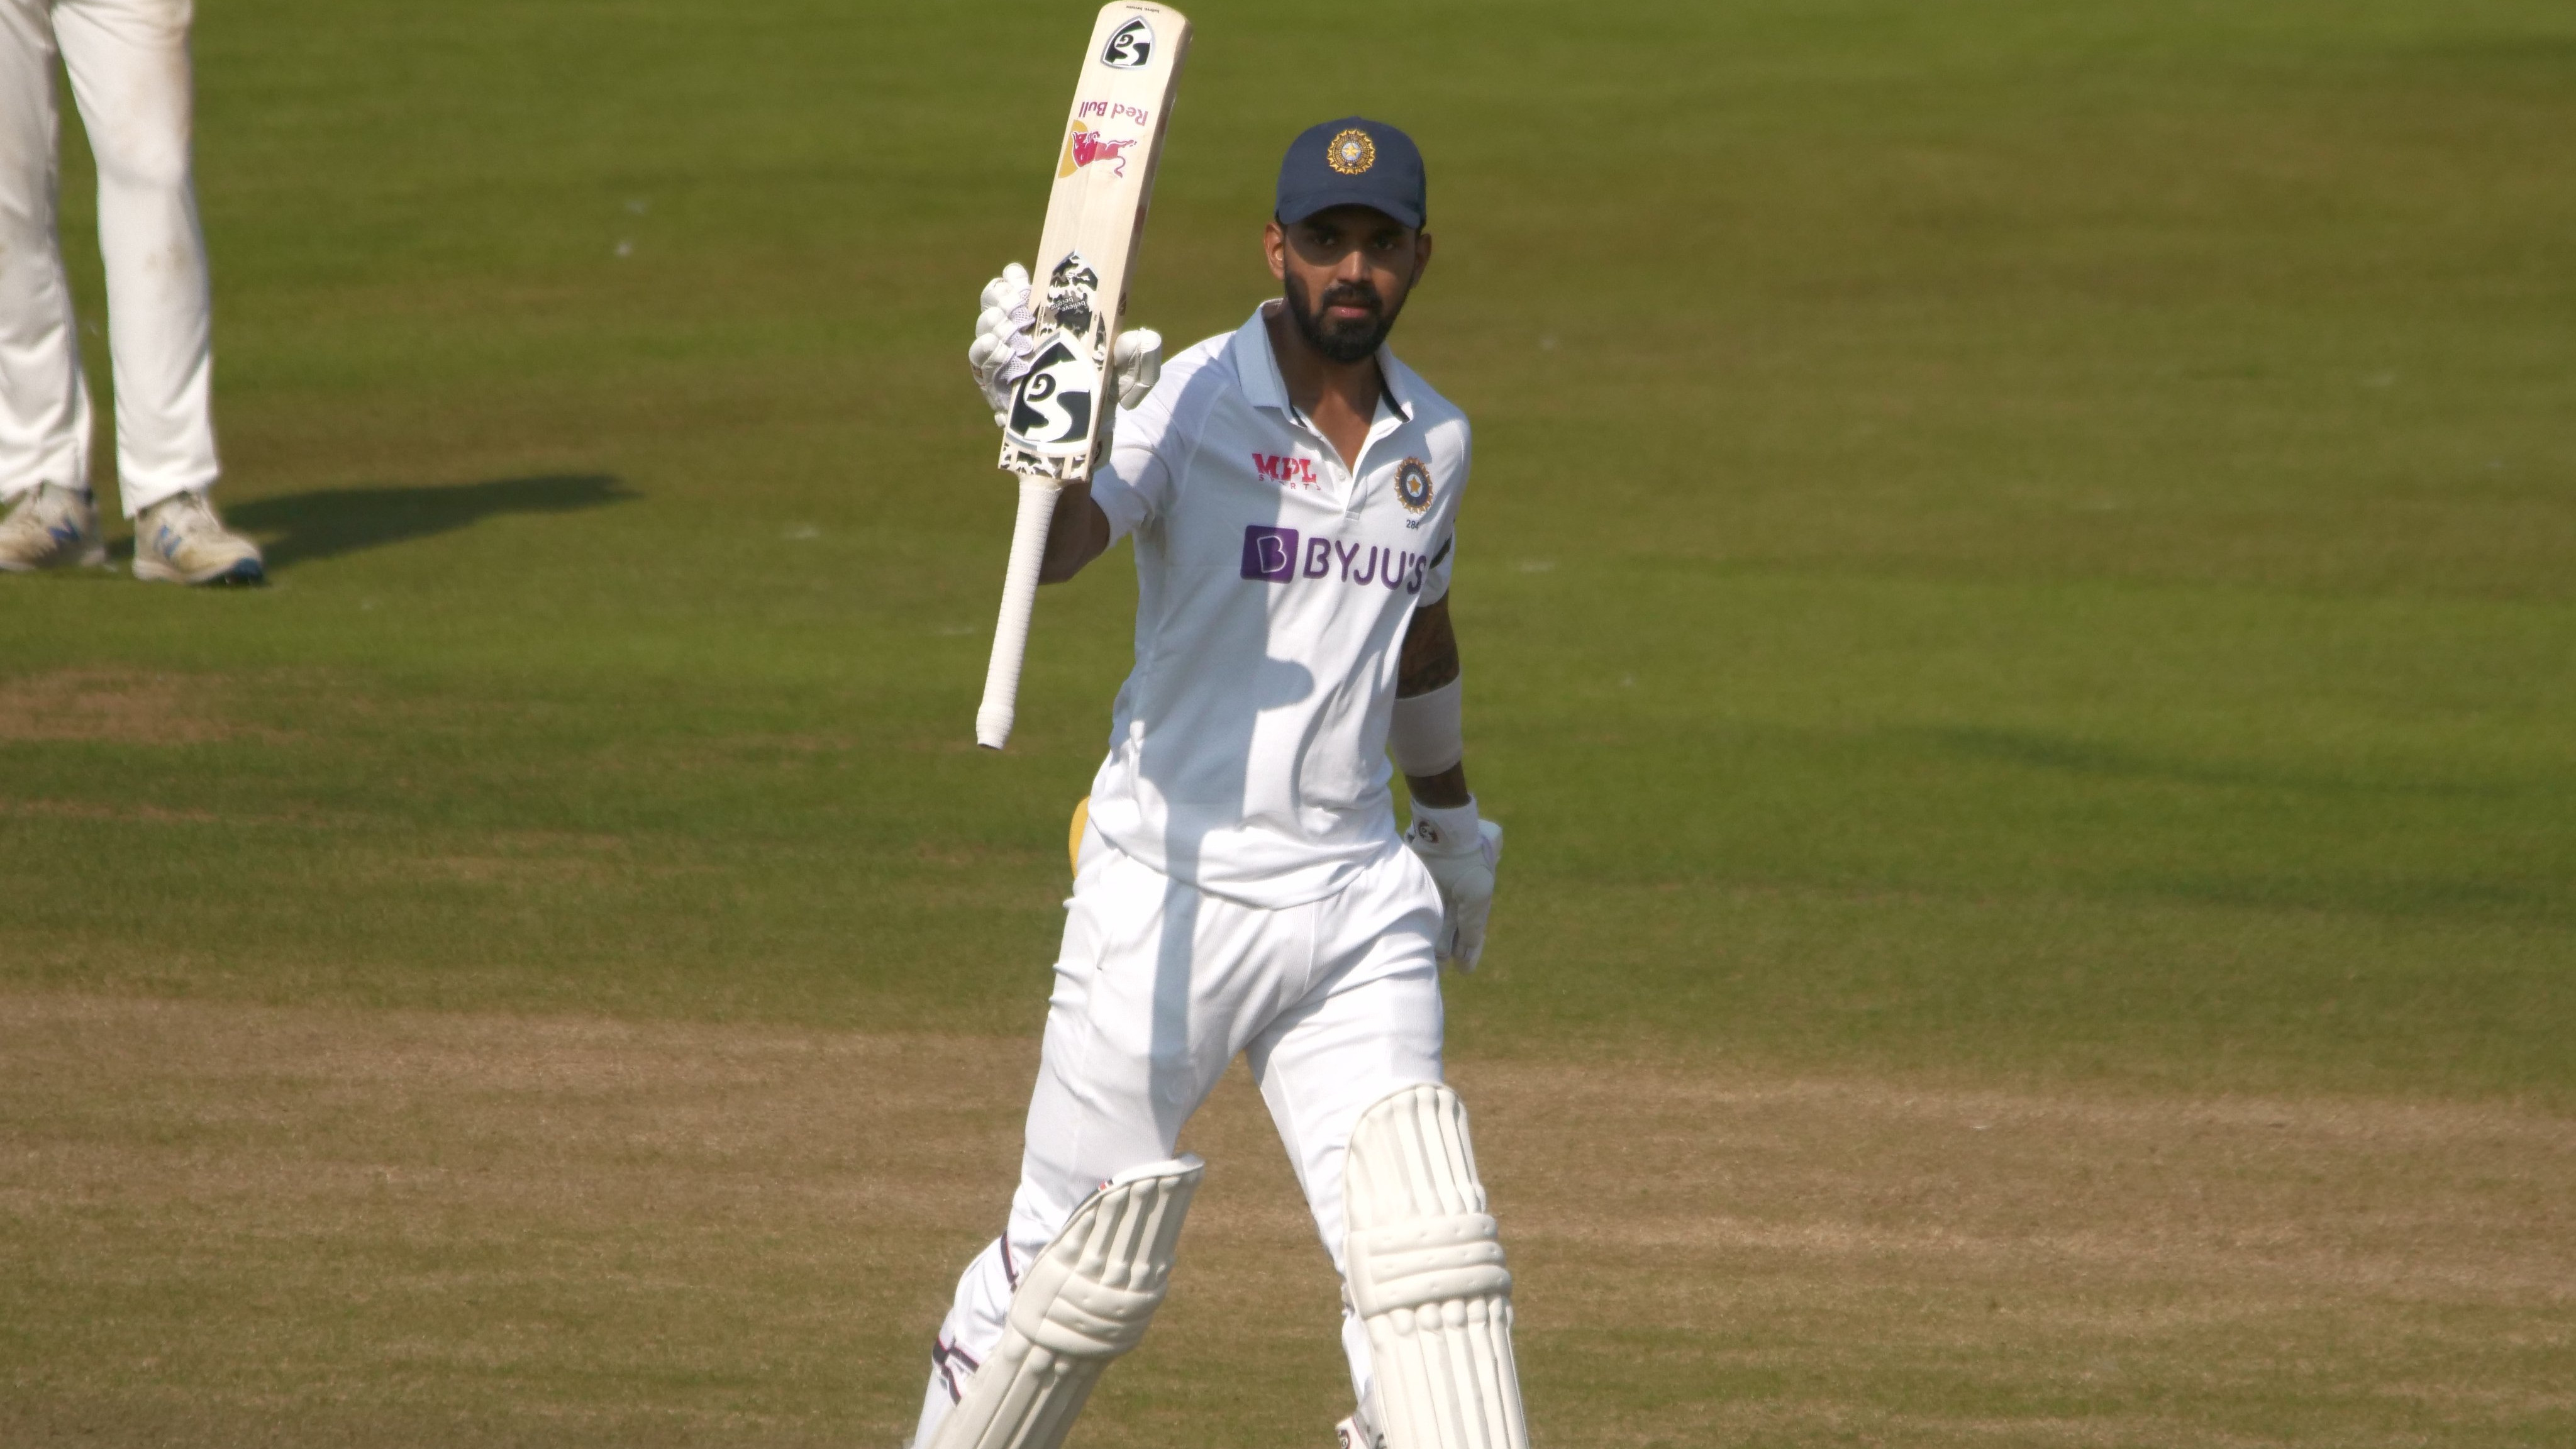 ENG v IND 2021: WATCH – KL Rahul slams century as Team India end Day 1 on 306/9 against County Select XI